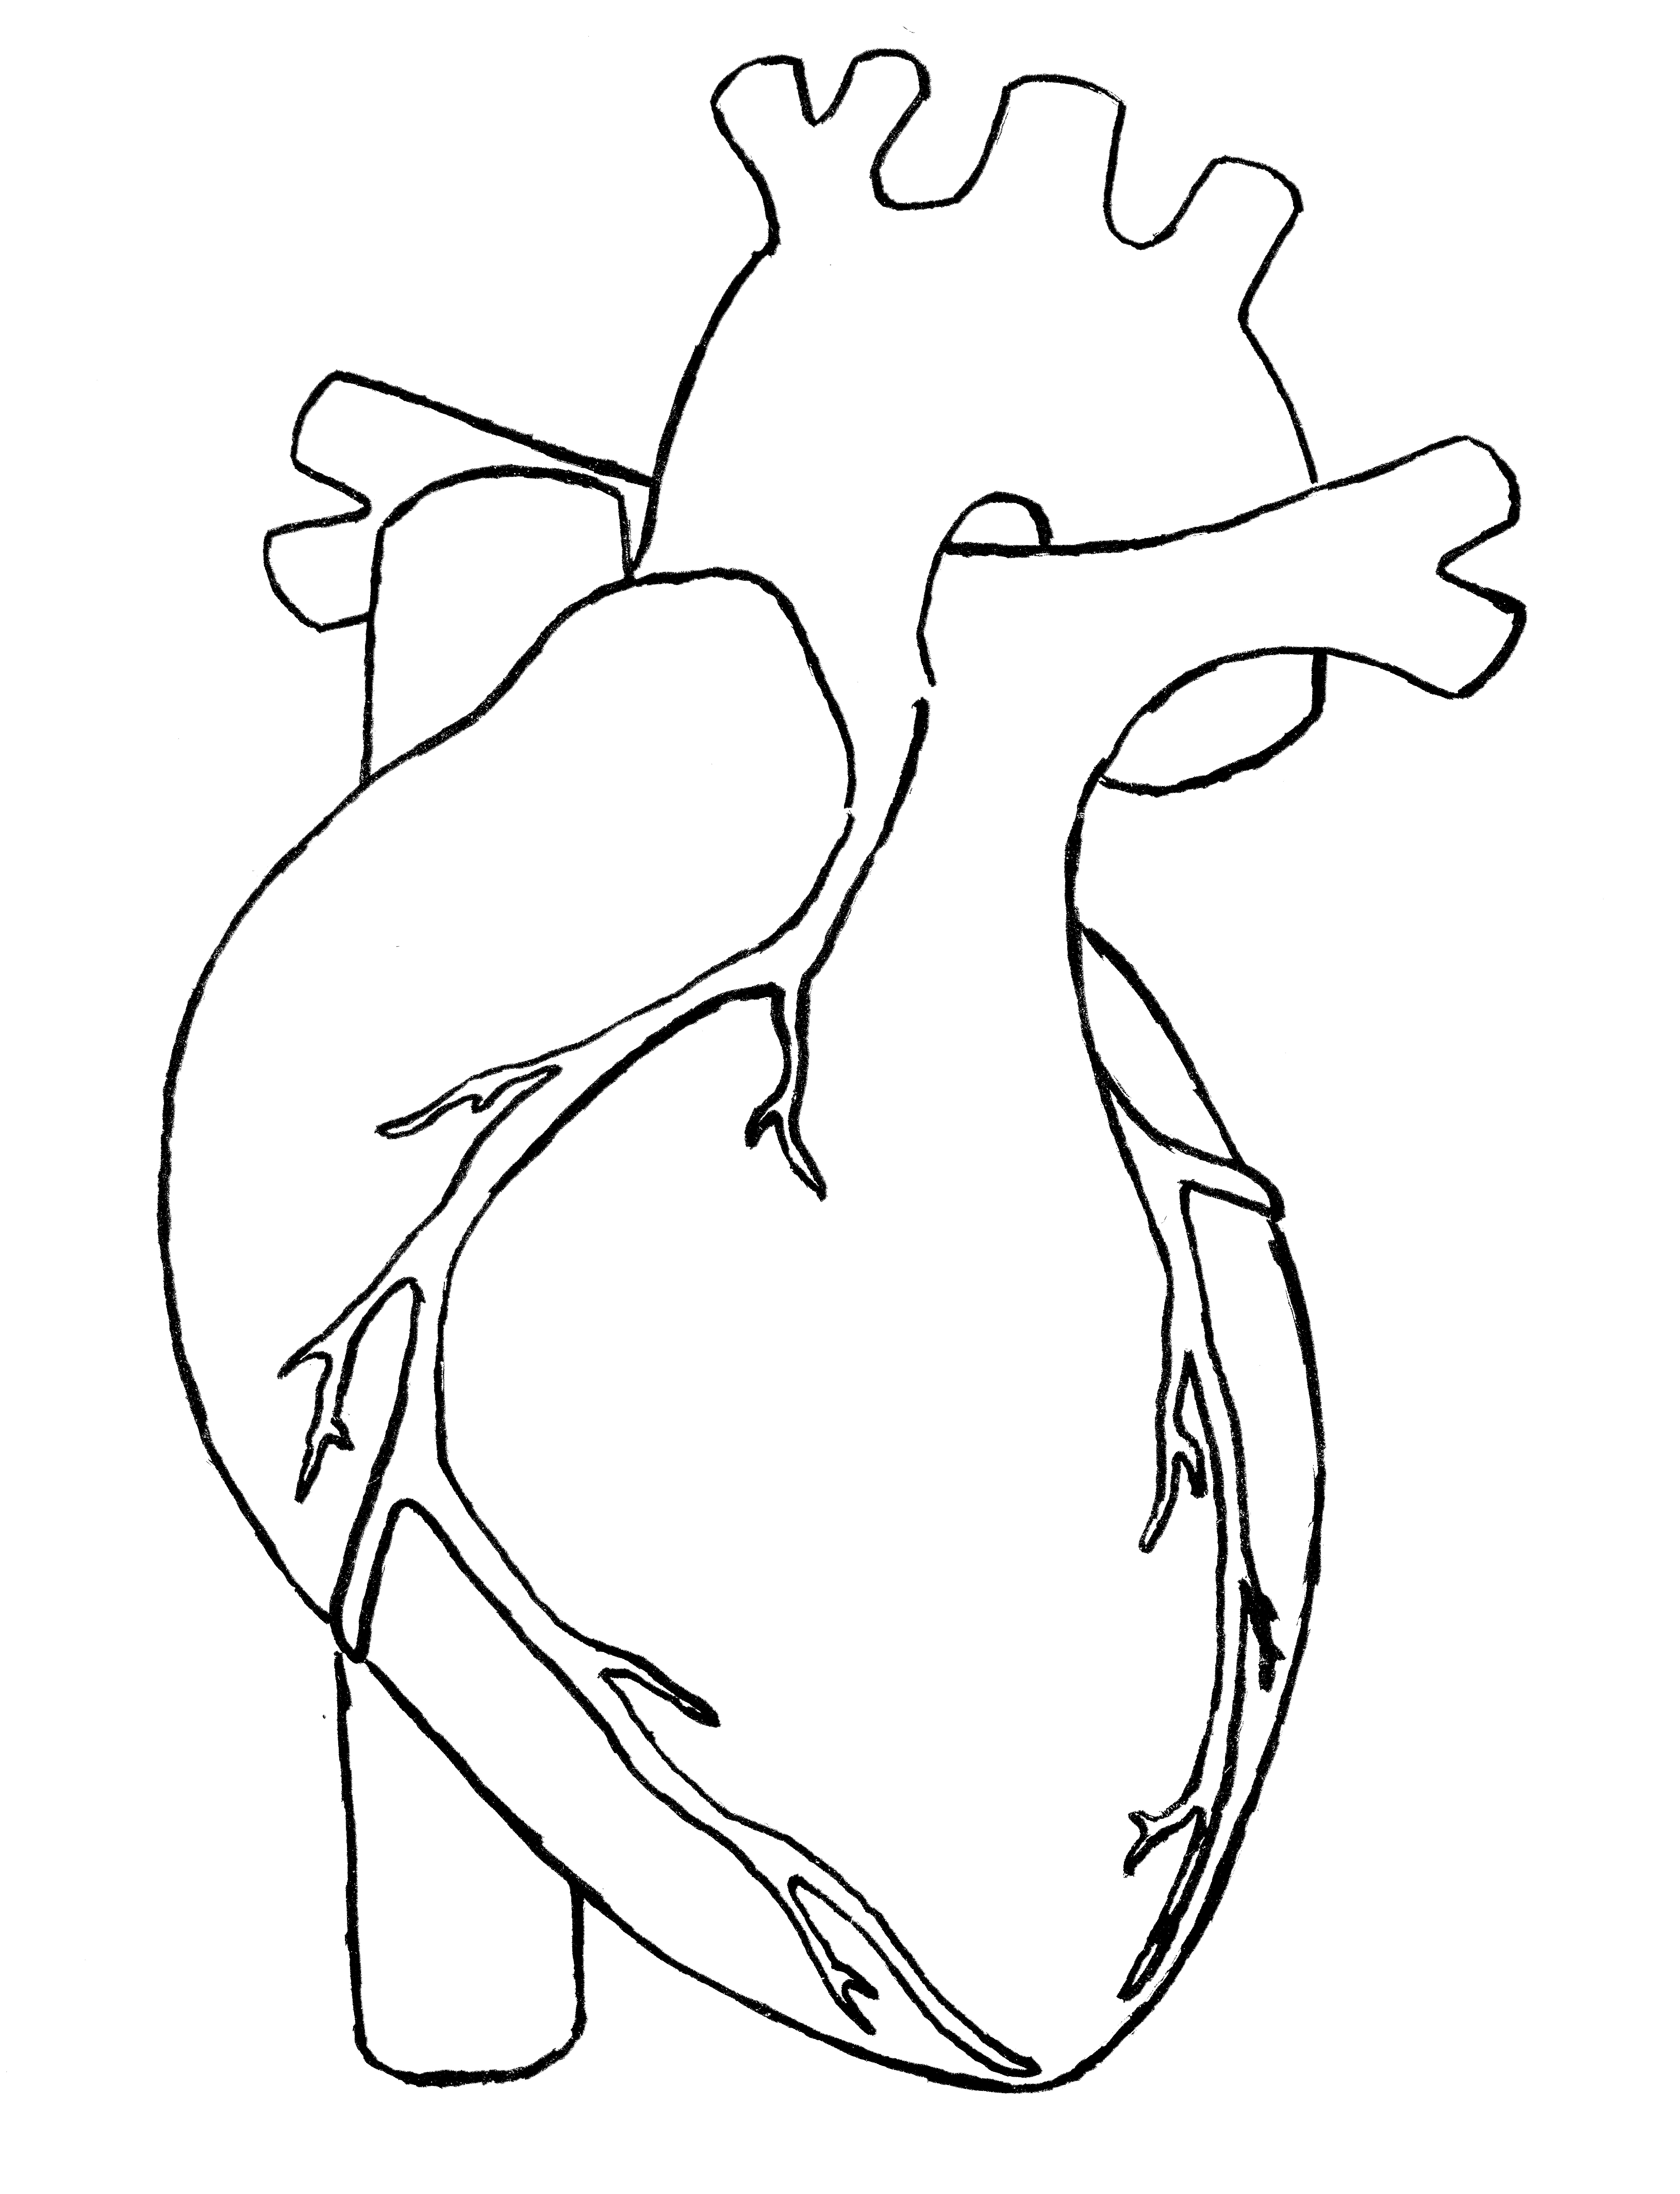 Easy Drawing Of Hearts At Getdrawings Com Free For Personal Use